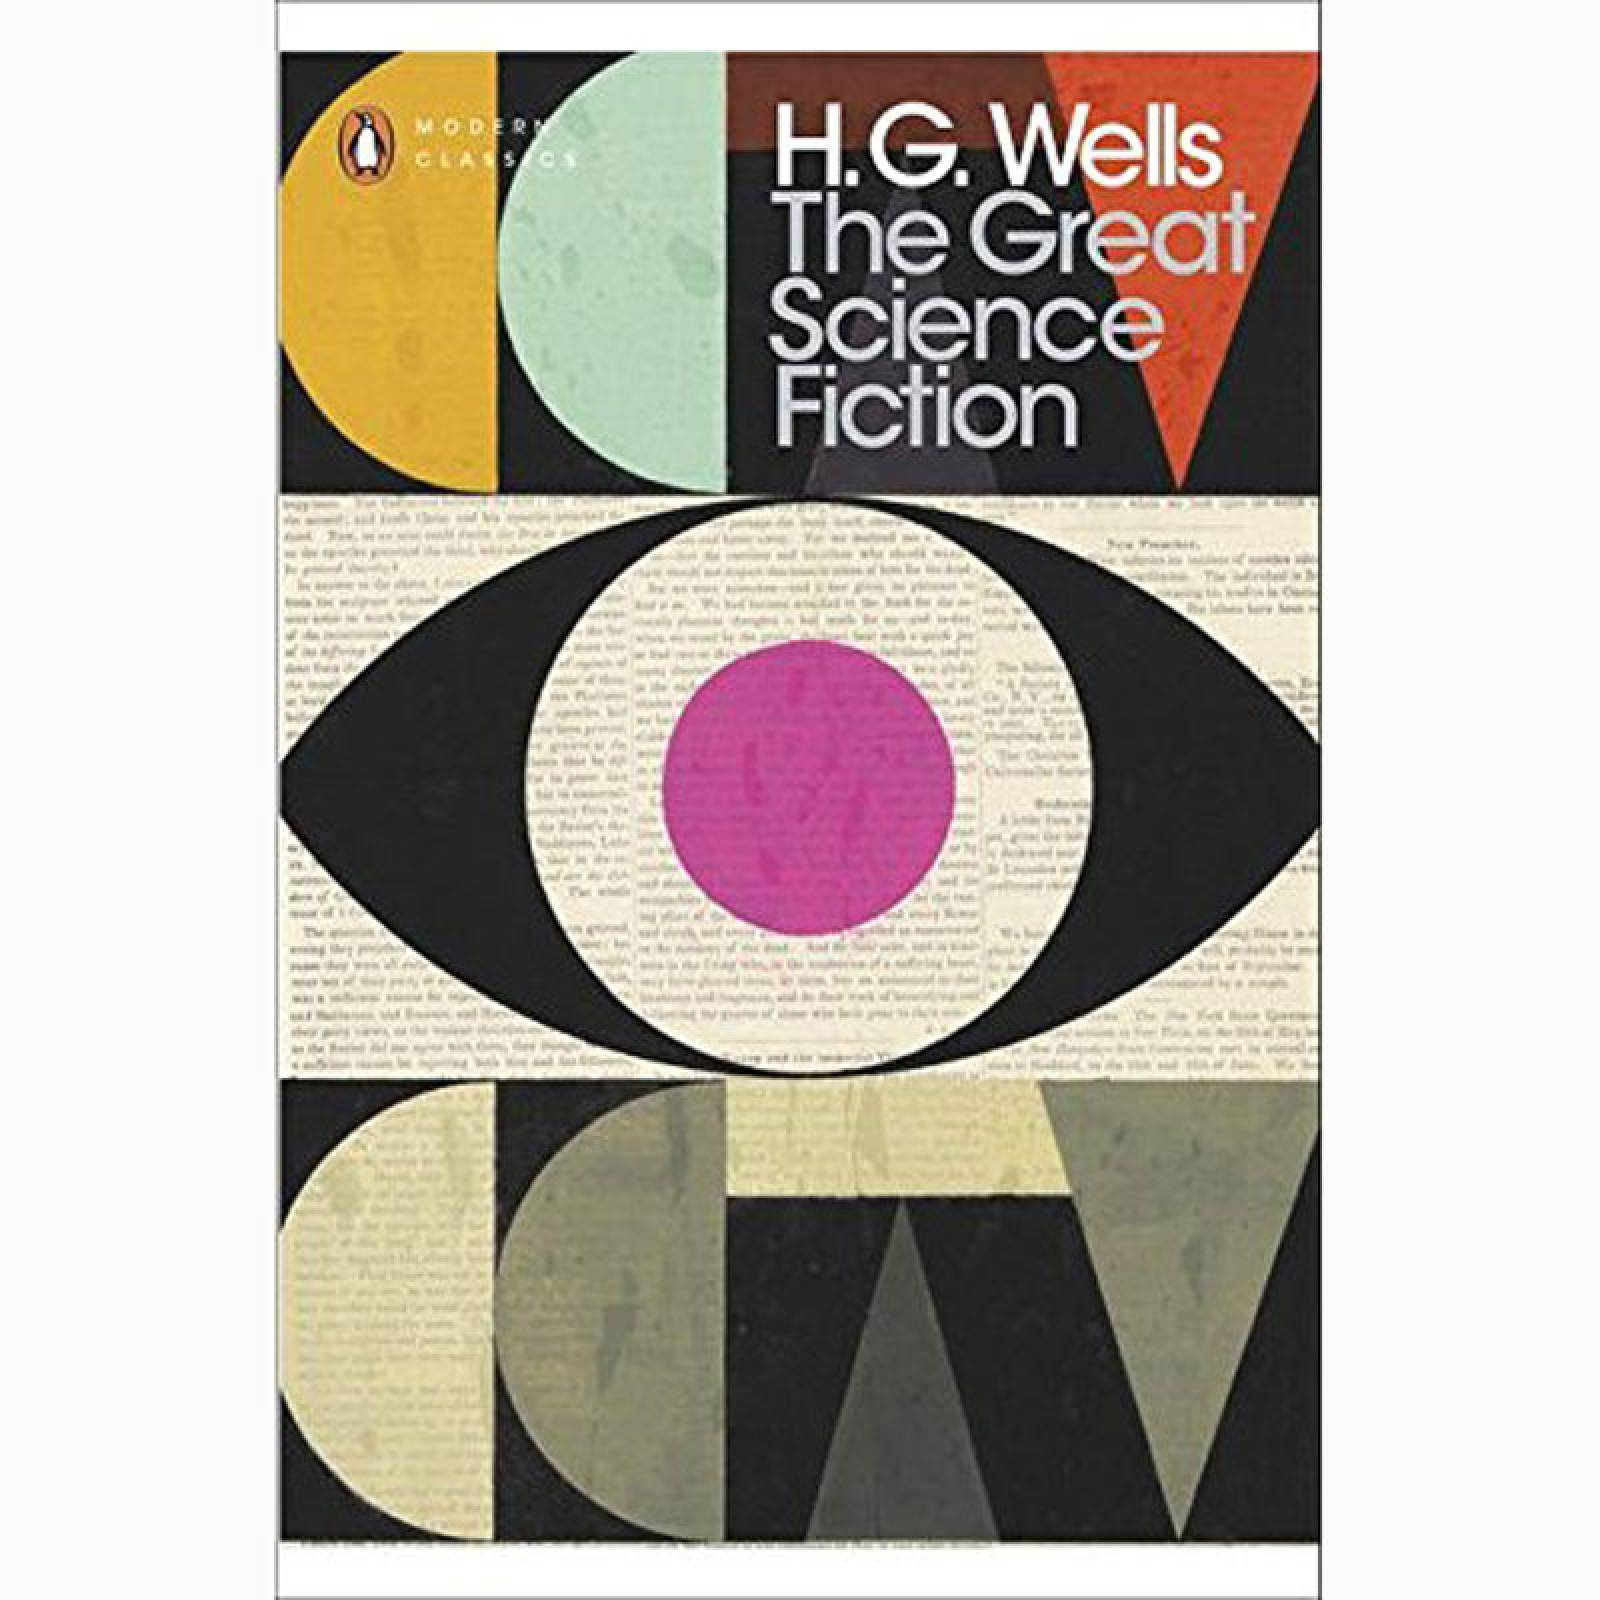 The Great Science Fiction By H.G. Wells - Paperback Book